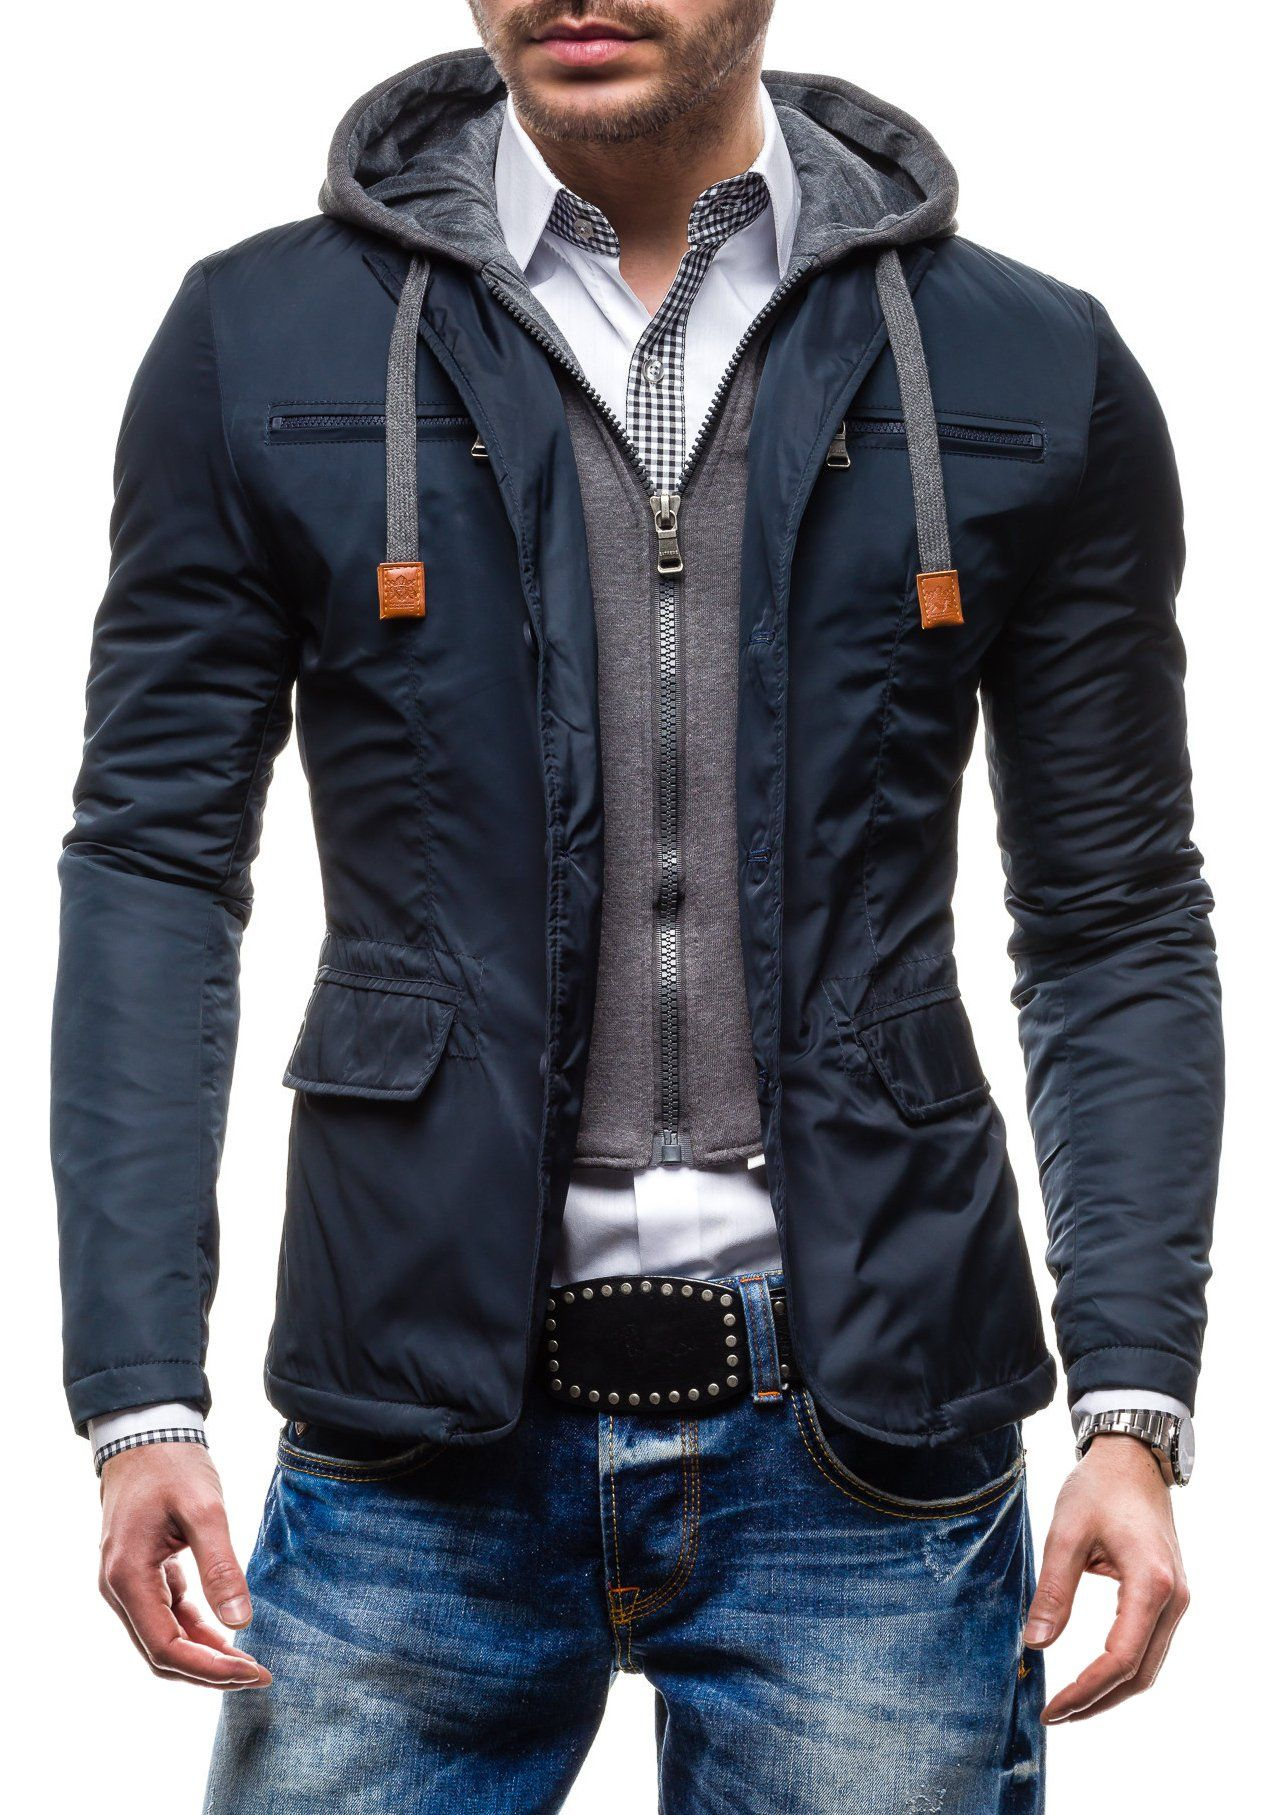 80ff8db82c3db0 EXTREME Men's Jacket Coat Sweatshirt Blazer Hoodie Slim Fit Leisure 07:  Amazon.co.uk: Clothing